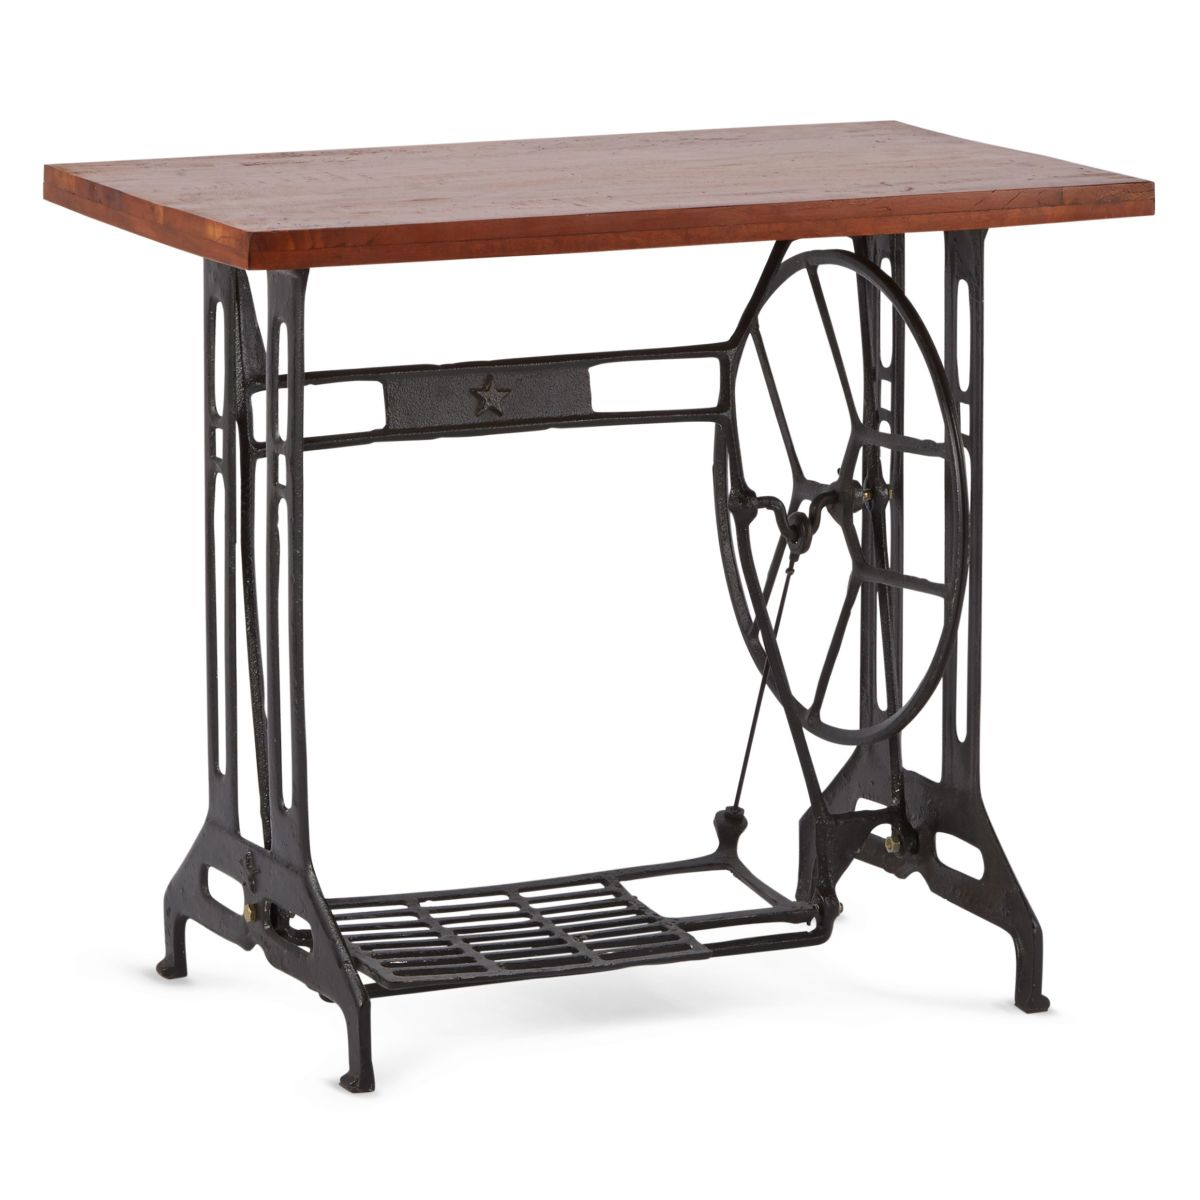 industrial tisch n hmaschinen beistelltisch elisabeth. Black Bedroom Furniture Sets. Home Design Ideas